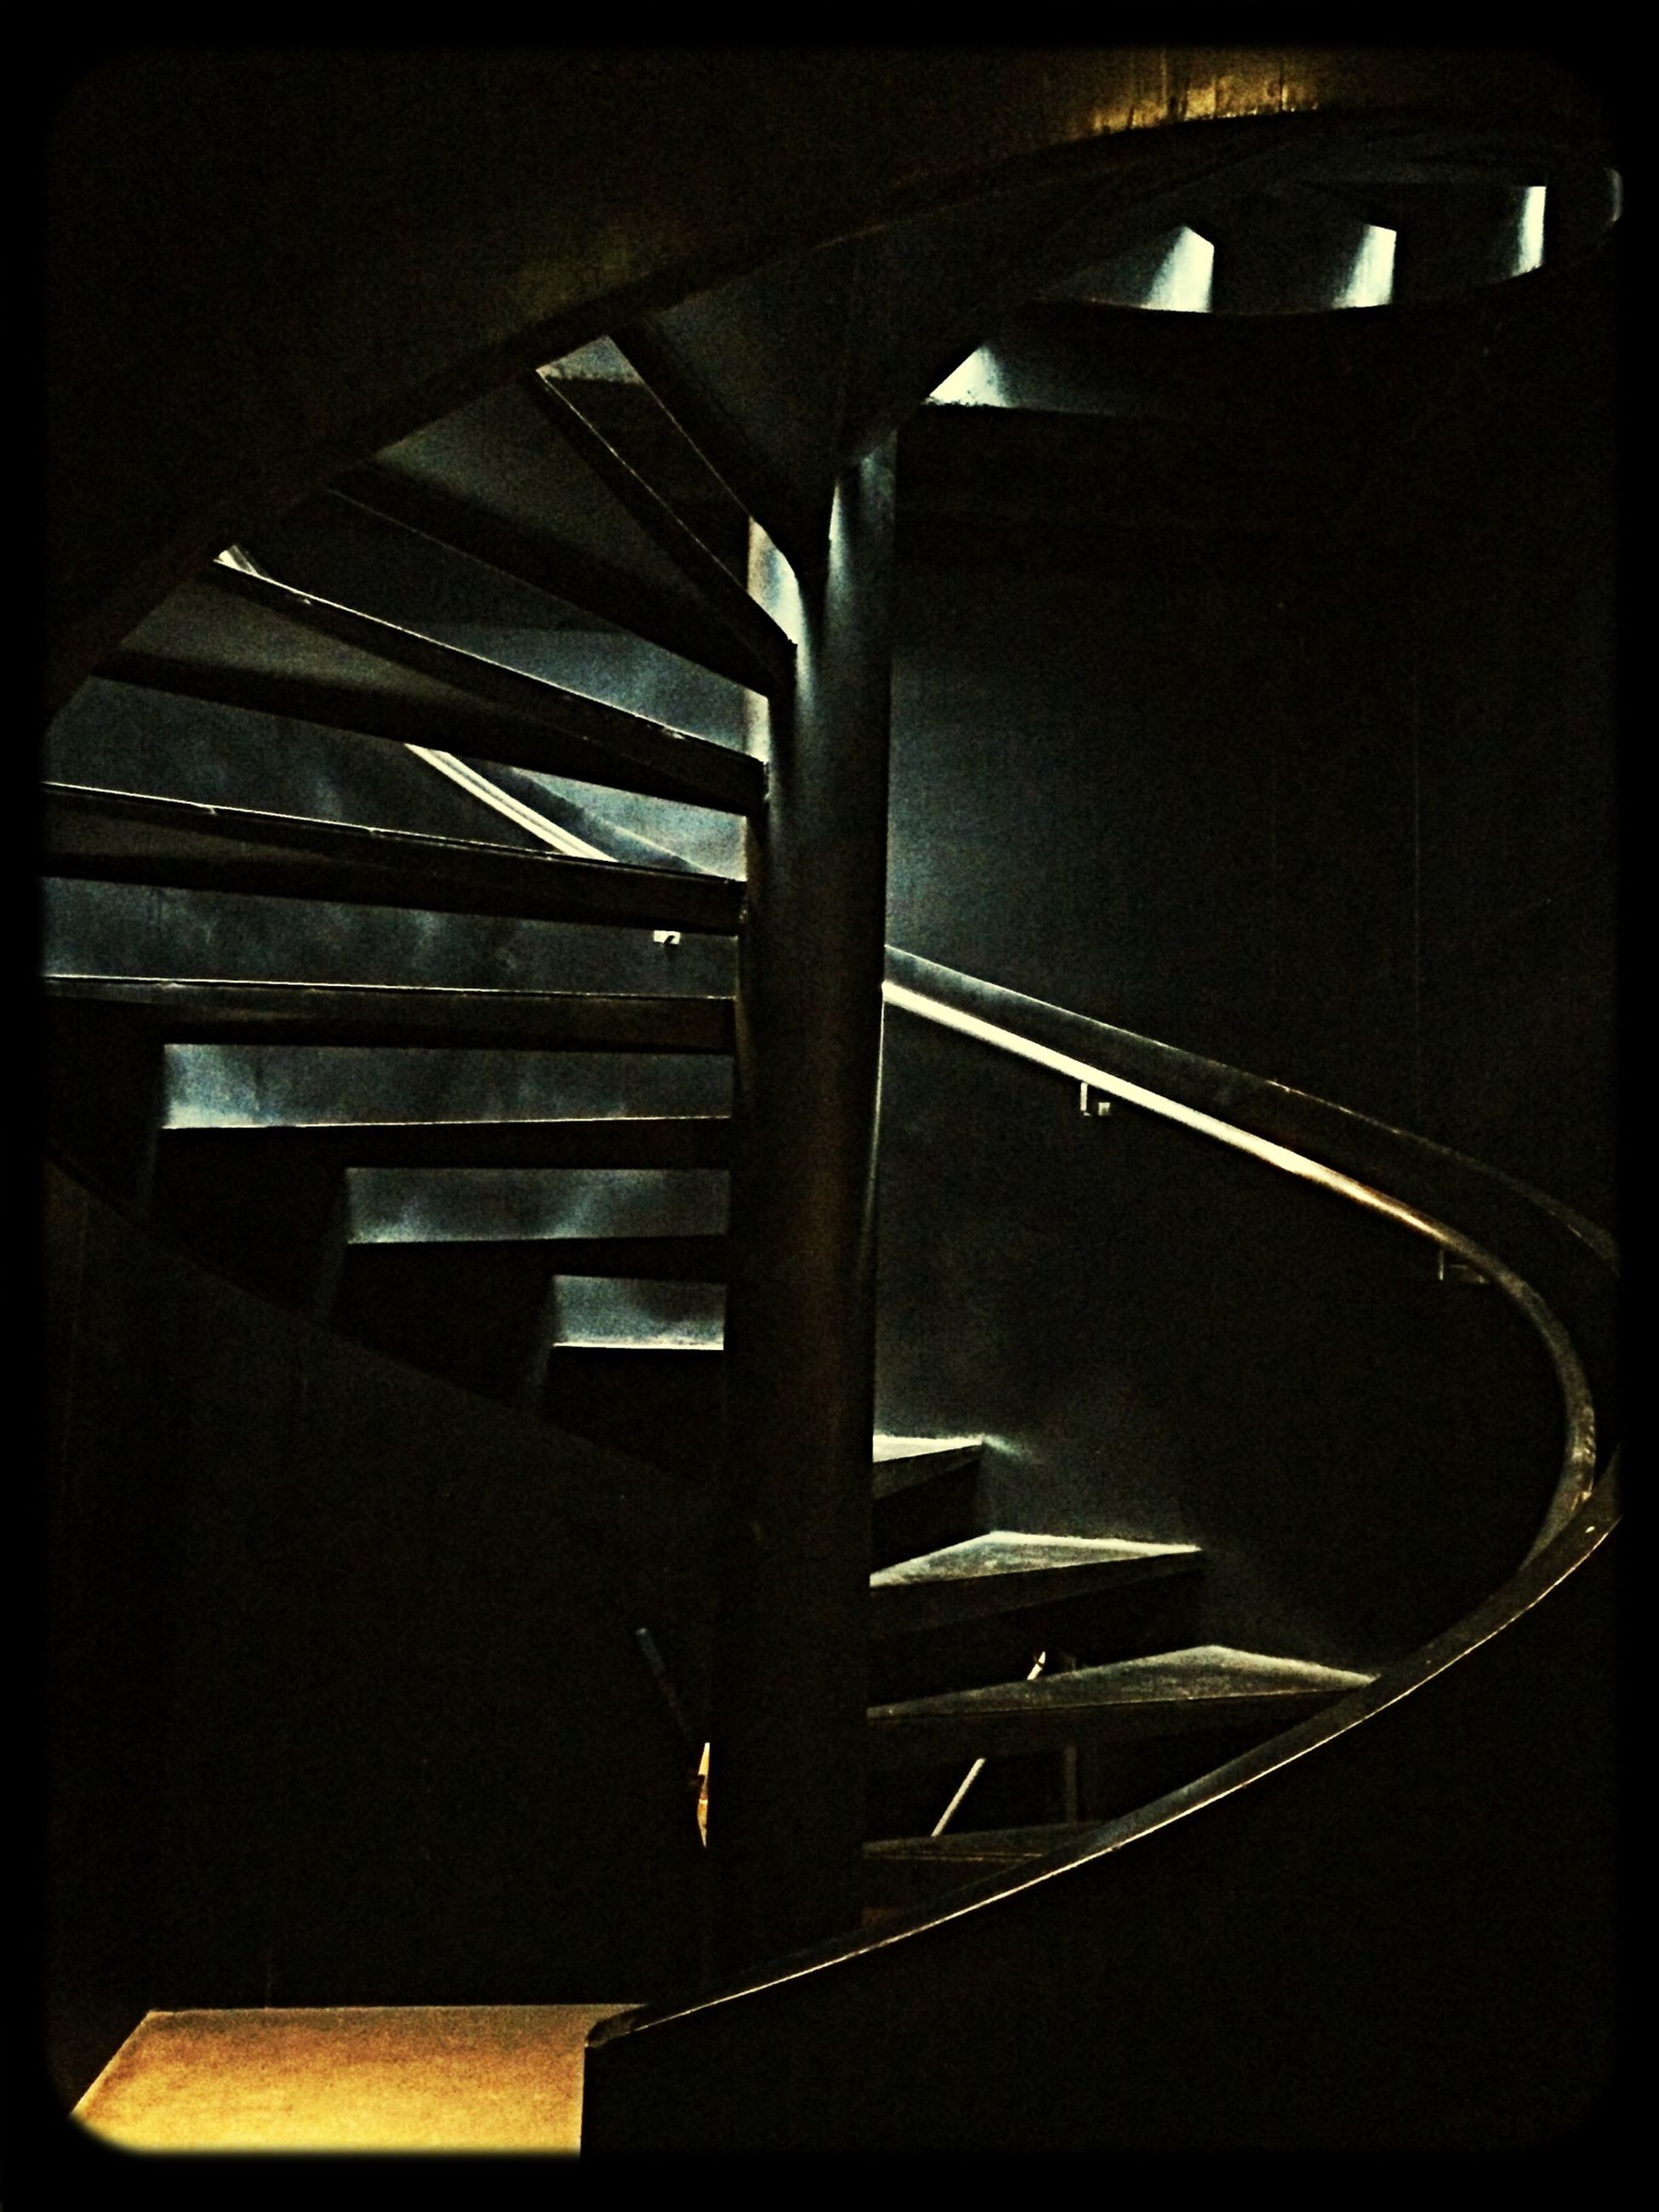 indoors, railing, architecture, steps and staircases, built structure, staircase, steps, illuminated, low angle view, metal, transfer print, auto post production filter, absence, no people, empty, high angle view, diminishing perspective, connection, transportation, technology